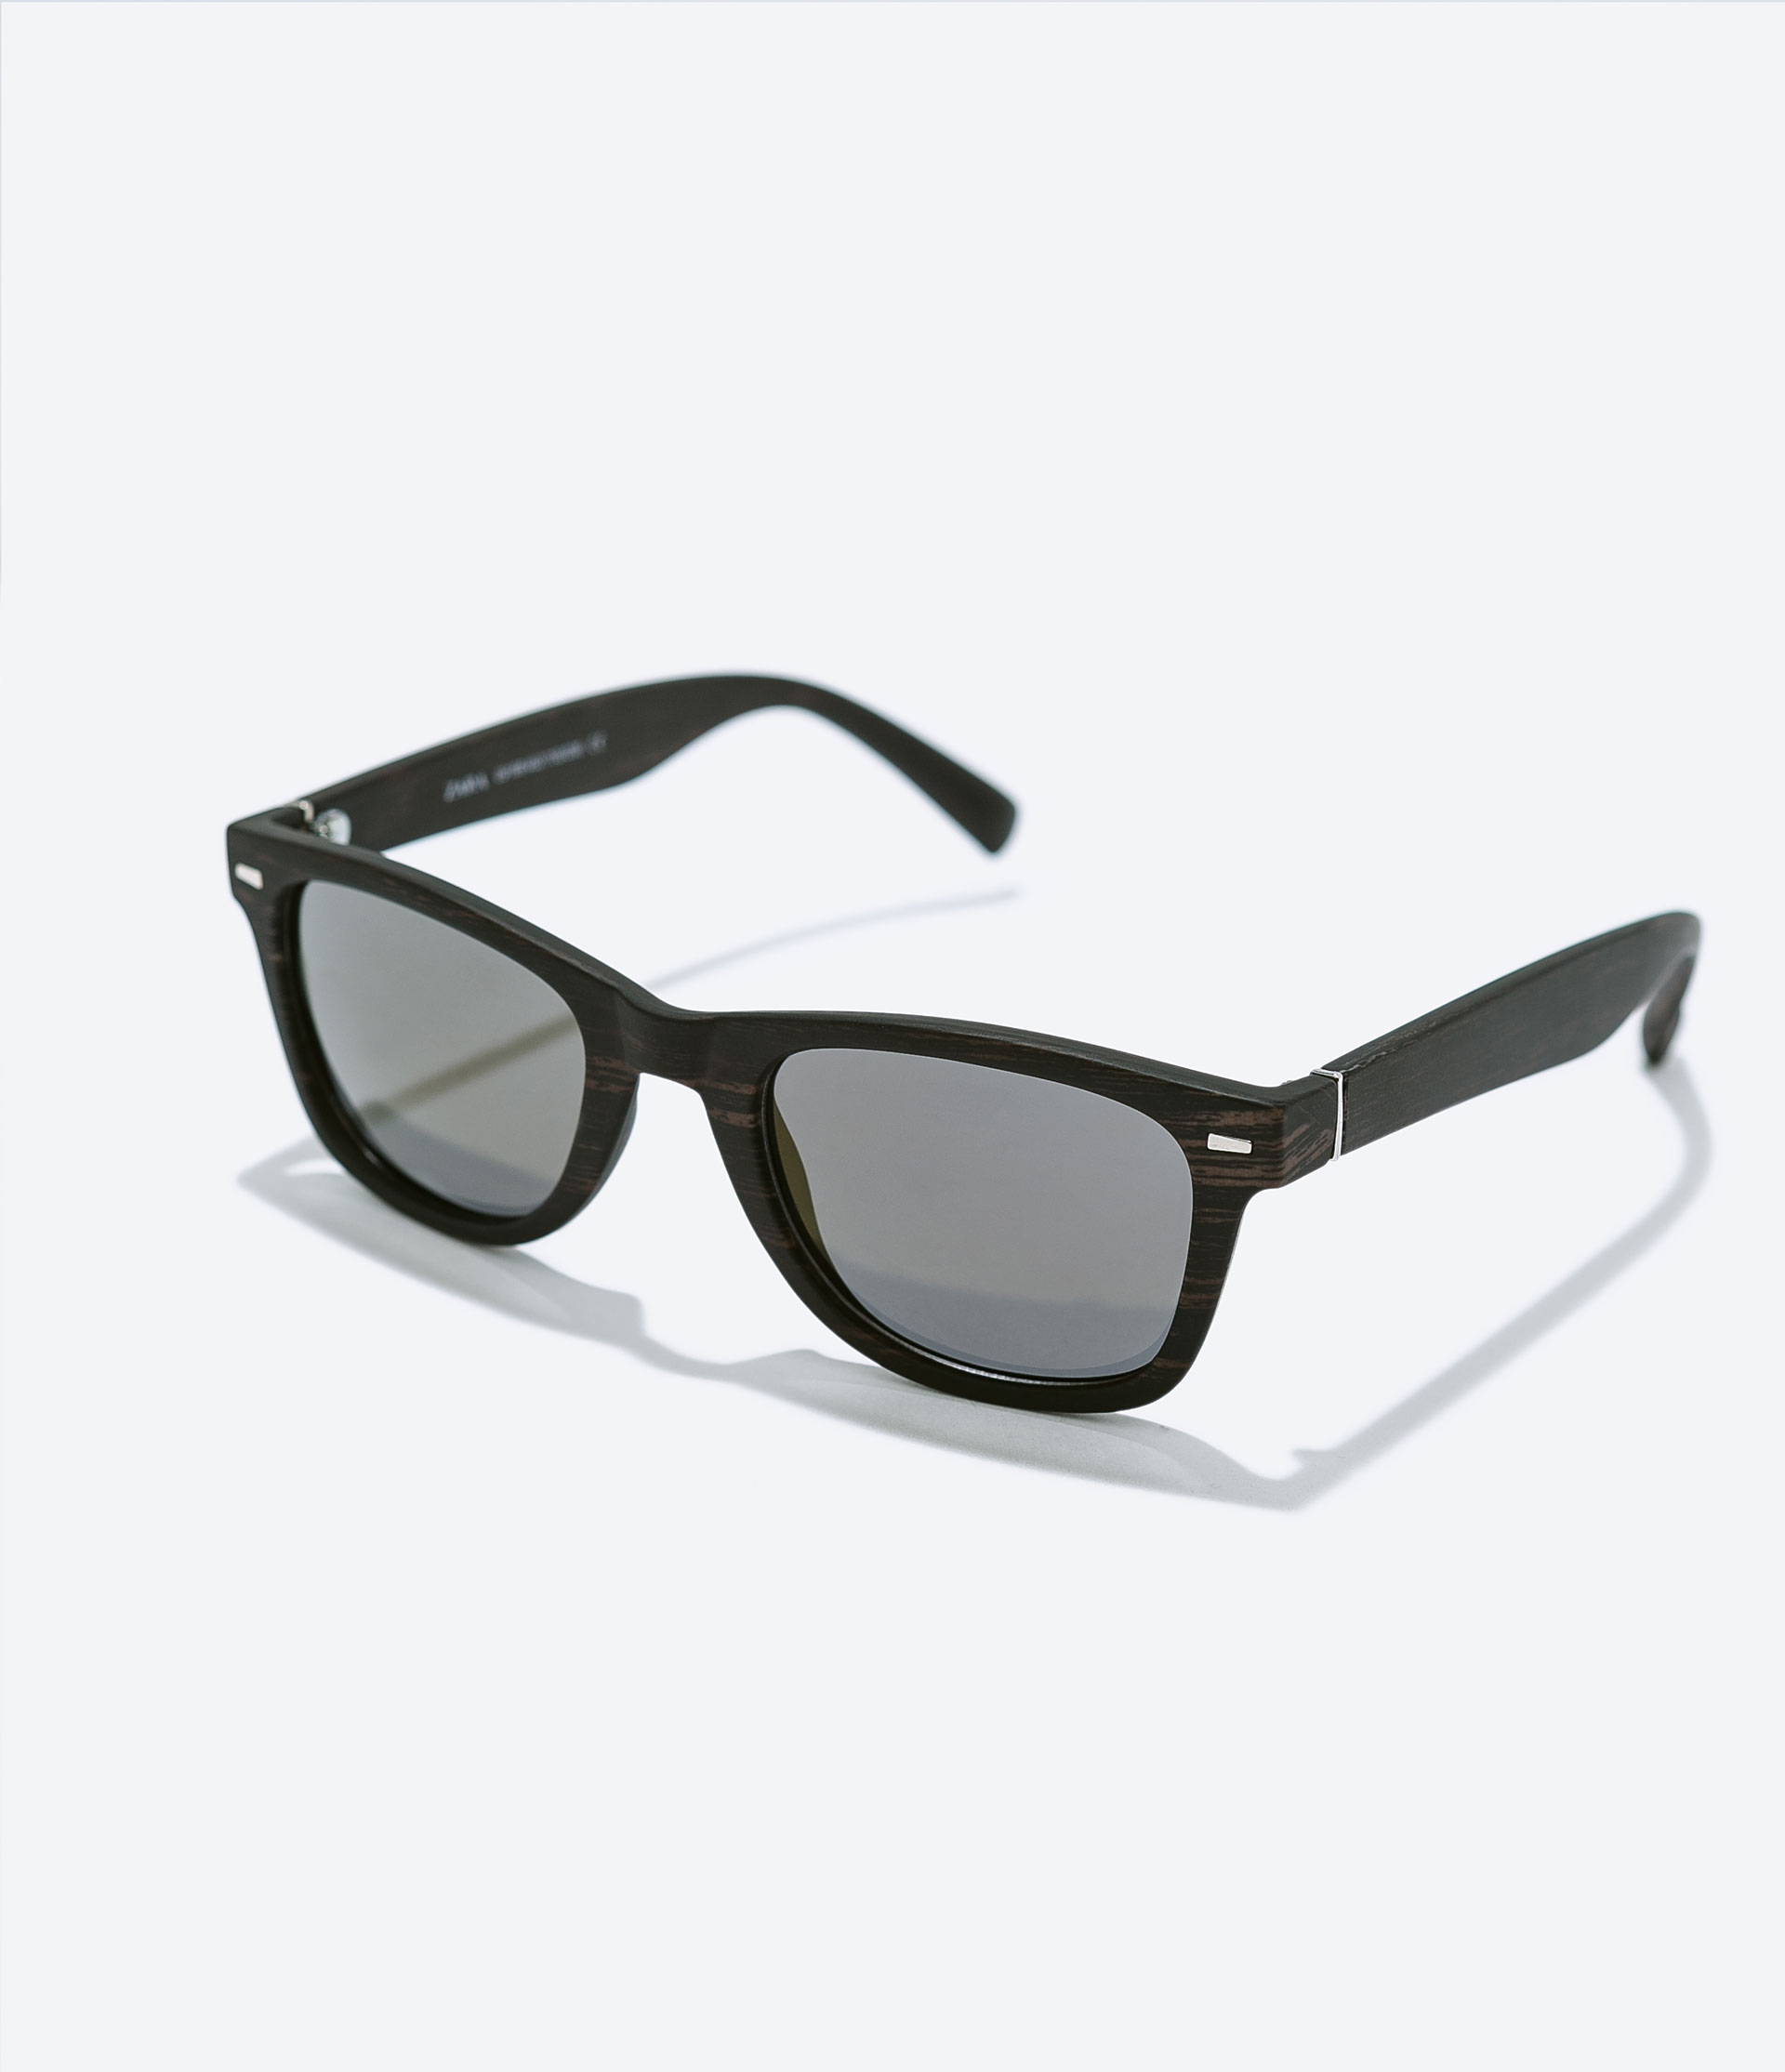 208be633ad Ray Ban Sunglasses New Mens Bathing « Heritage Malta